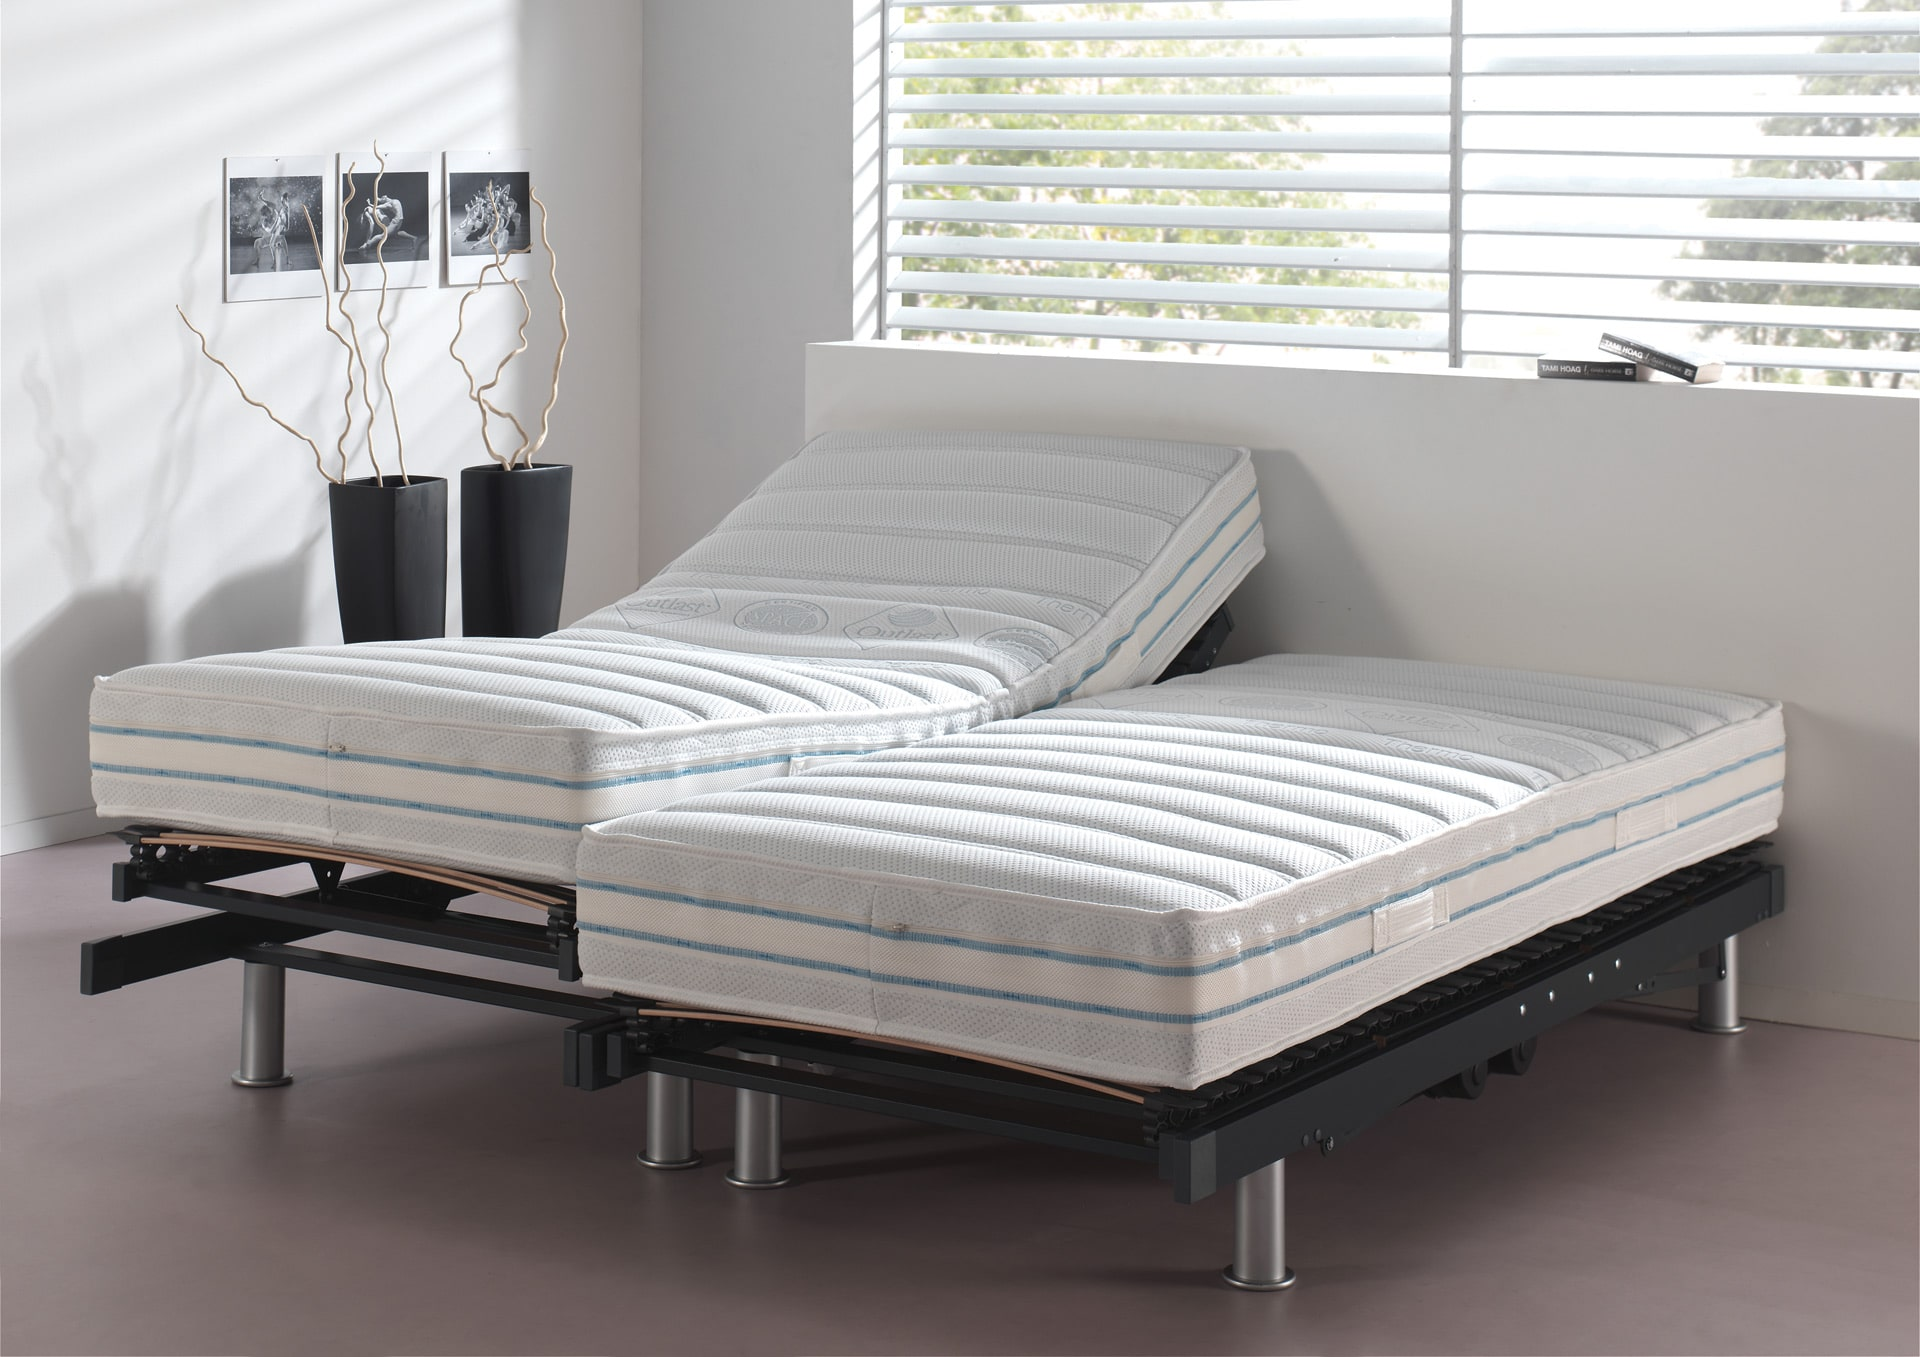 comment choisir son matelas blog matelpro mobiliers. Black Bedroom Furniture Sets. Home Design Ideas